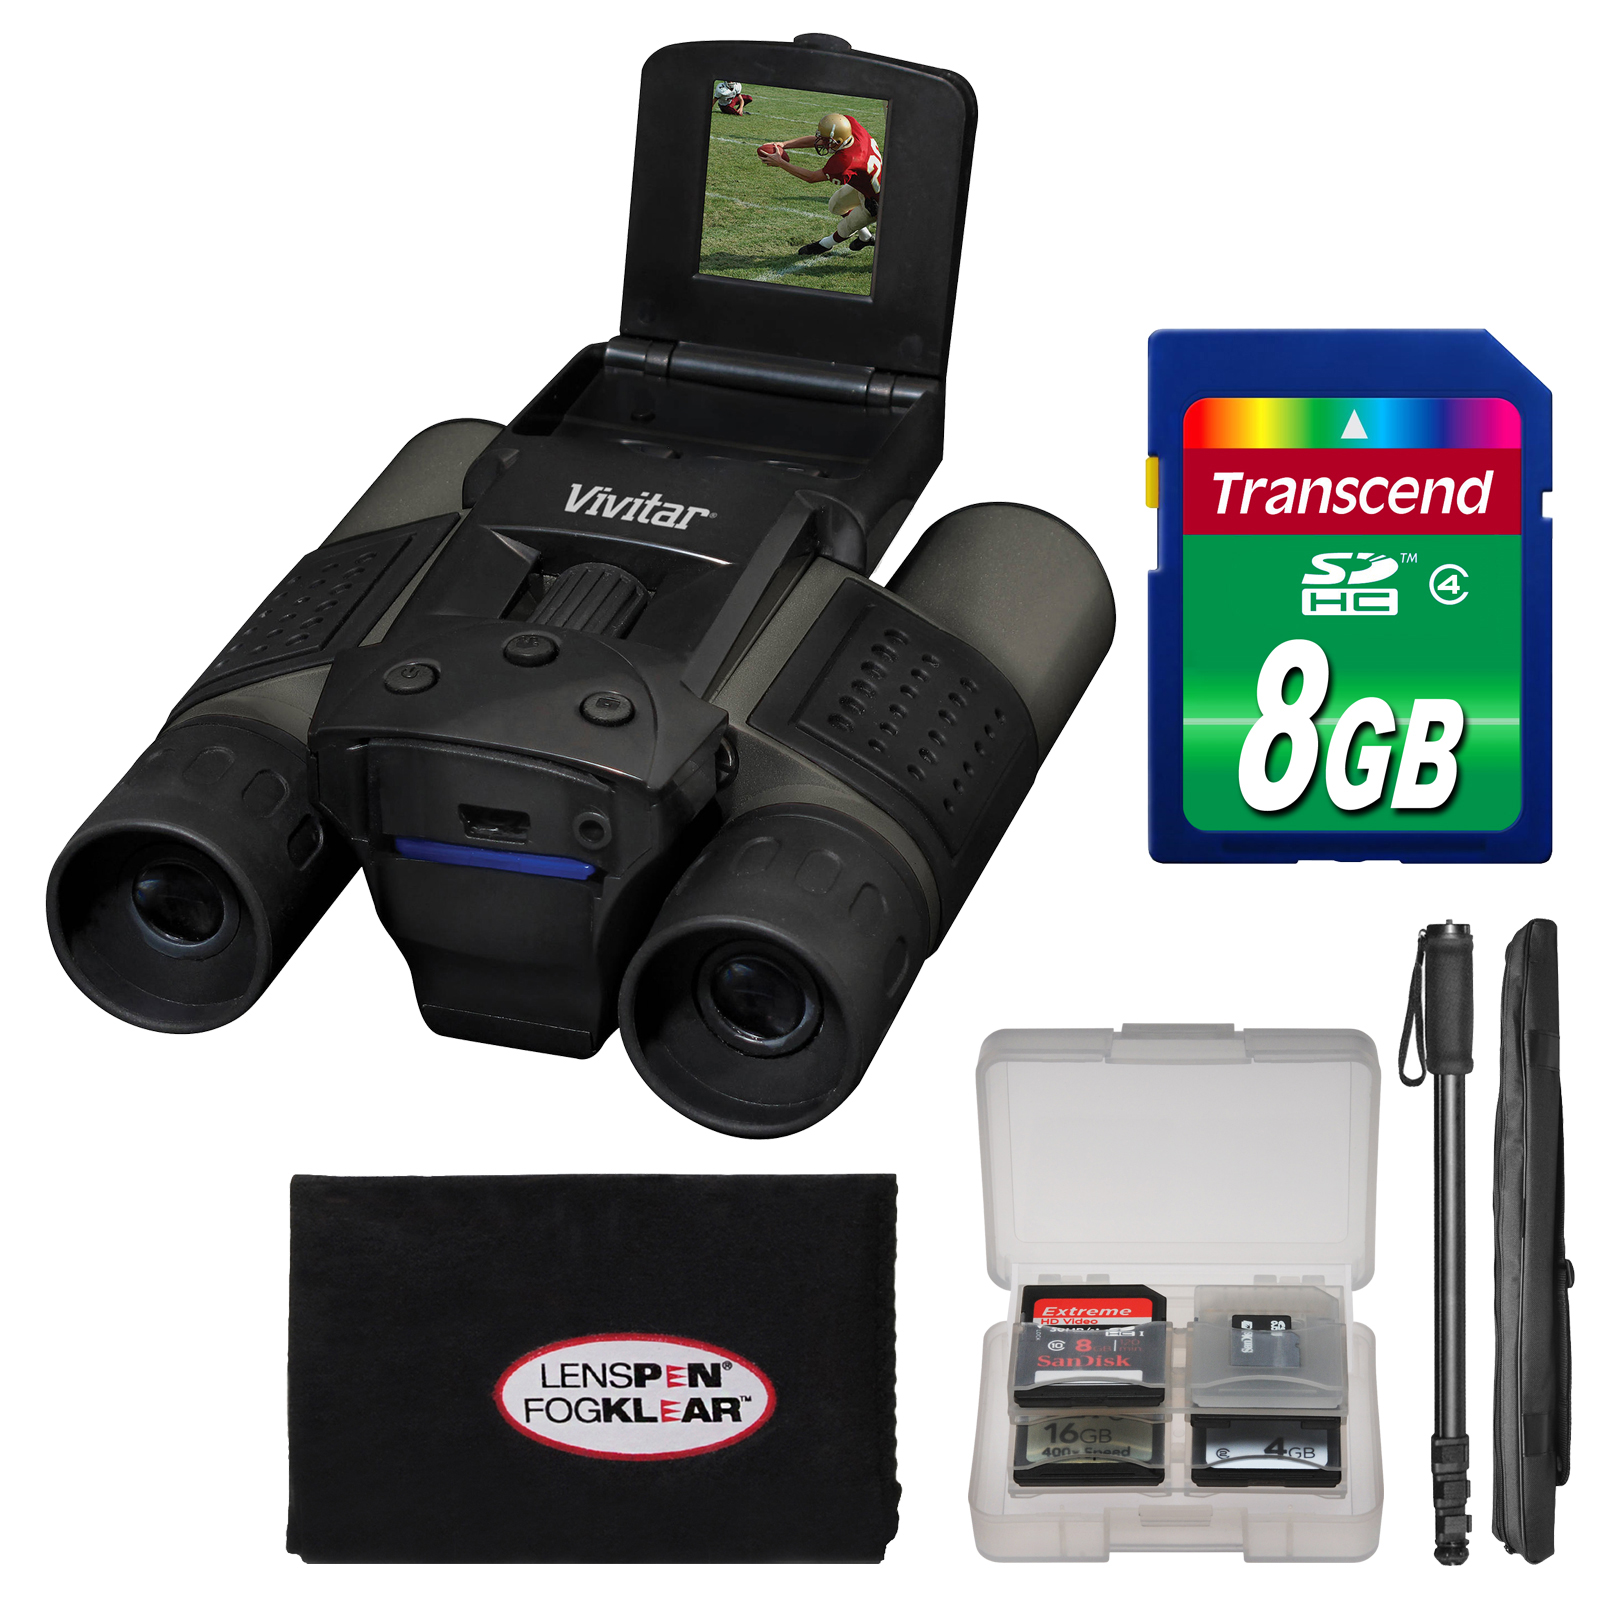 Vivitar 10x25 Binoculars with Built-in Digital Camera with 8GB Card + Monopod + FogKlear Cleaning Cloth + Kit by Vivitar